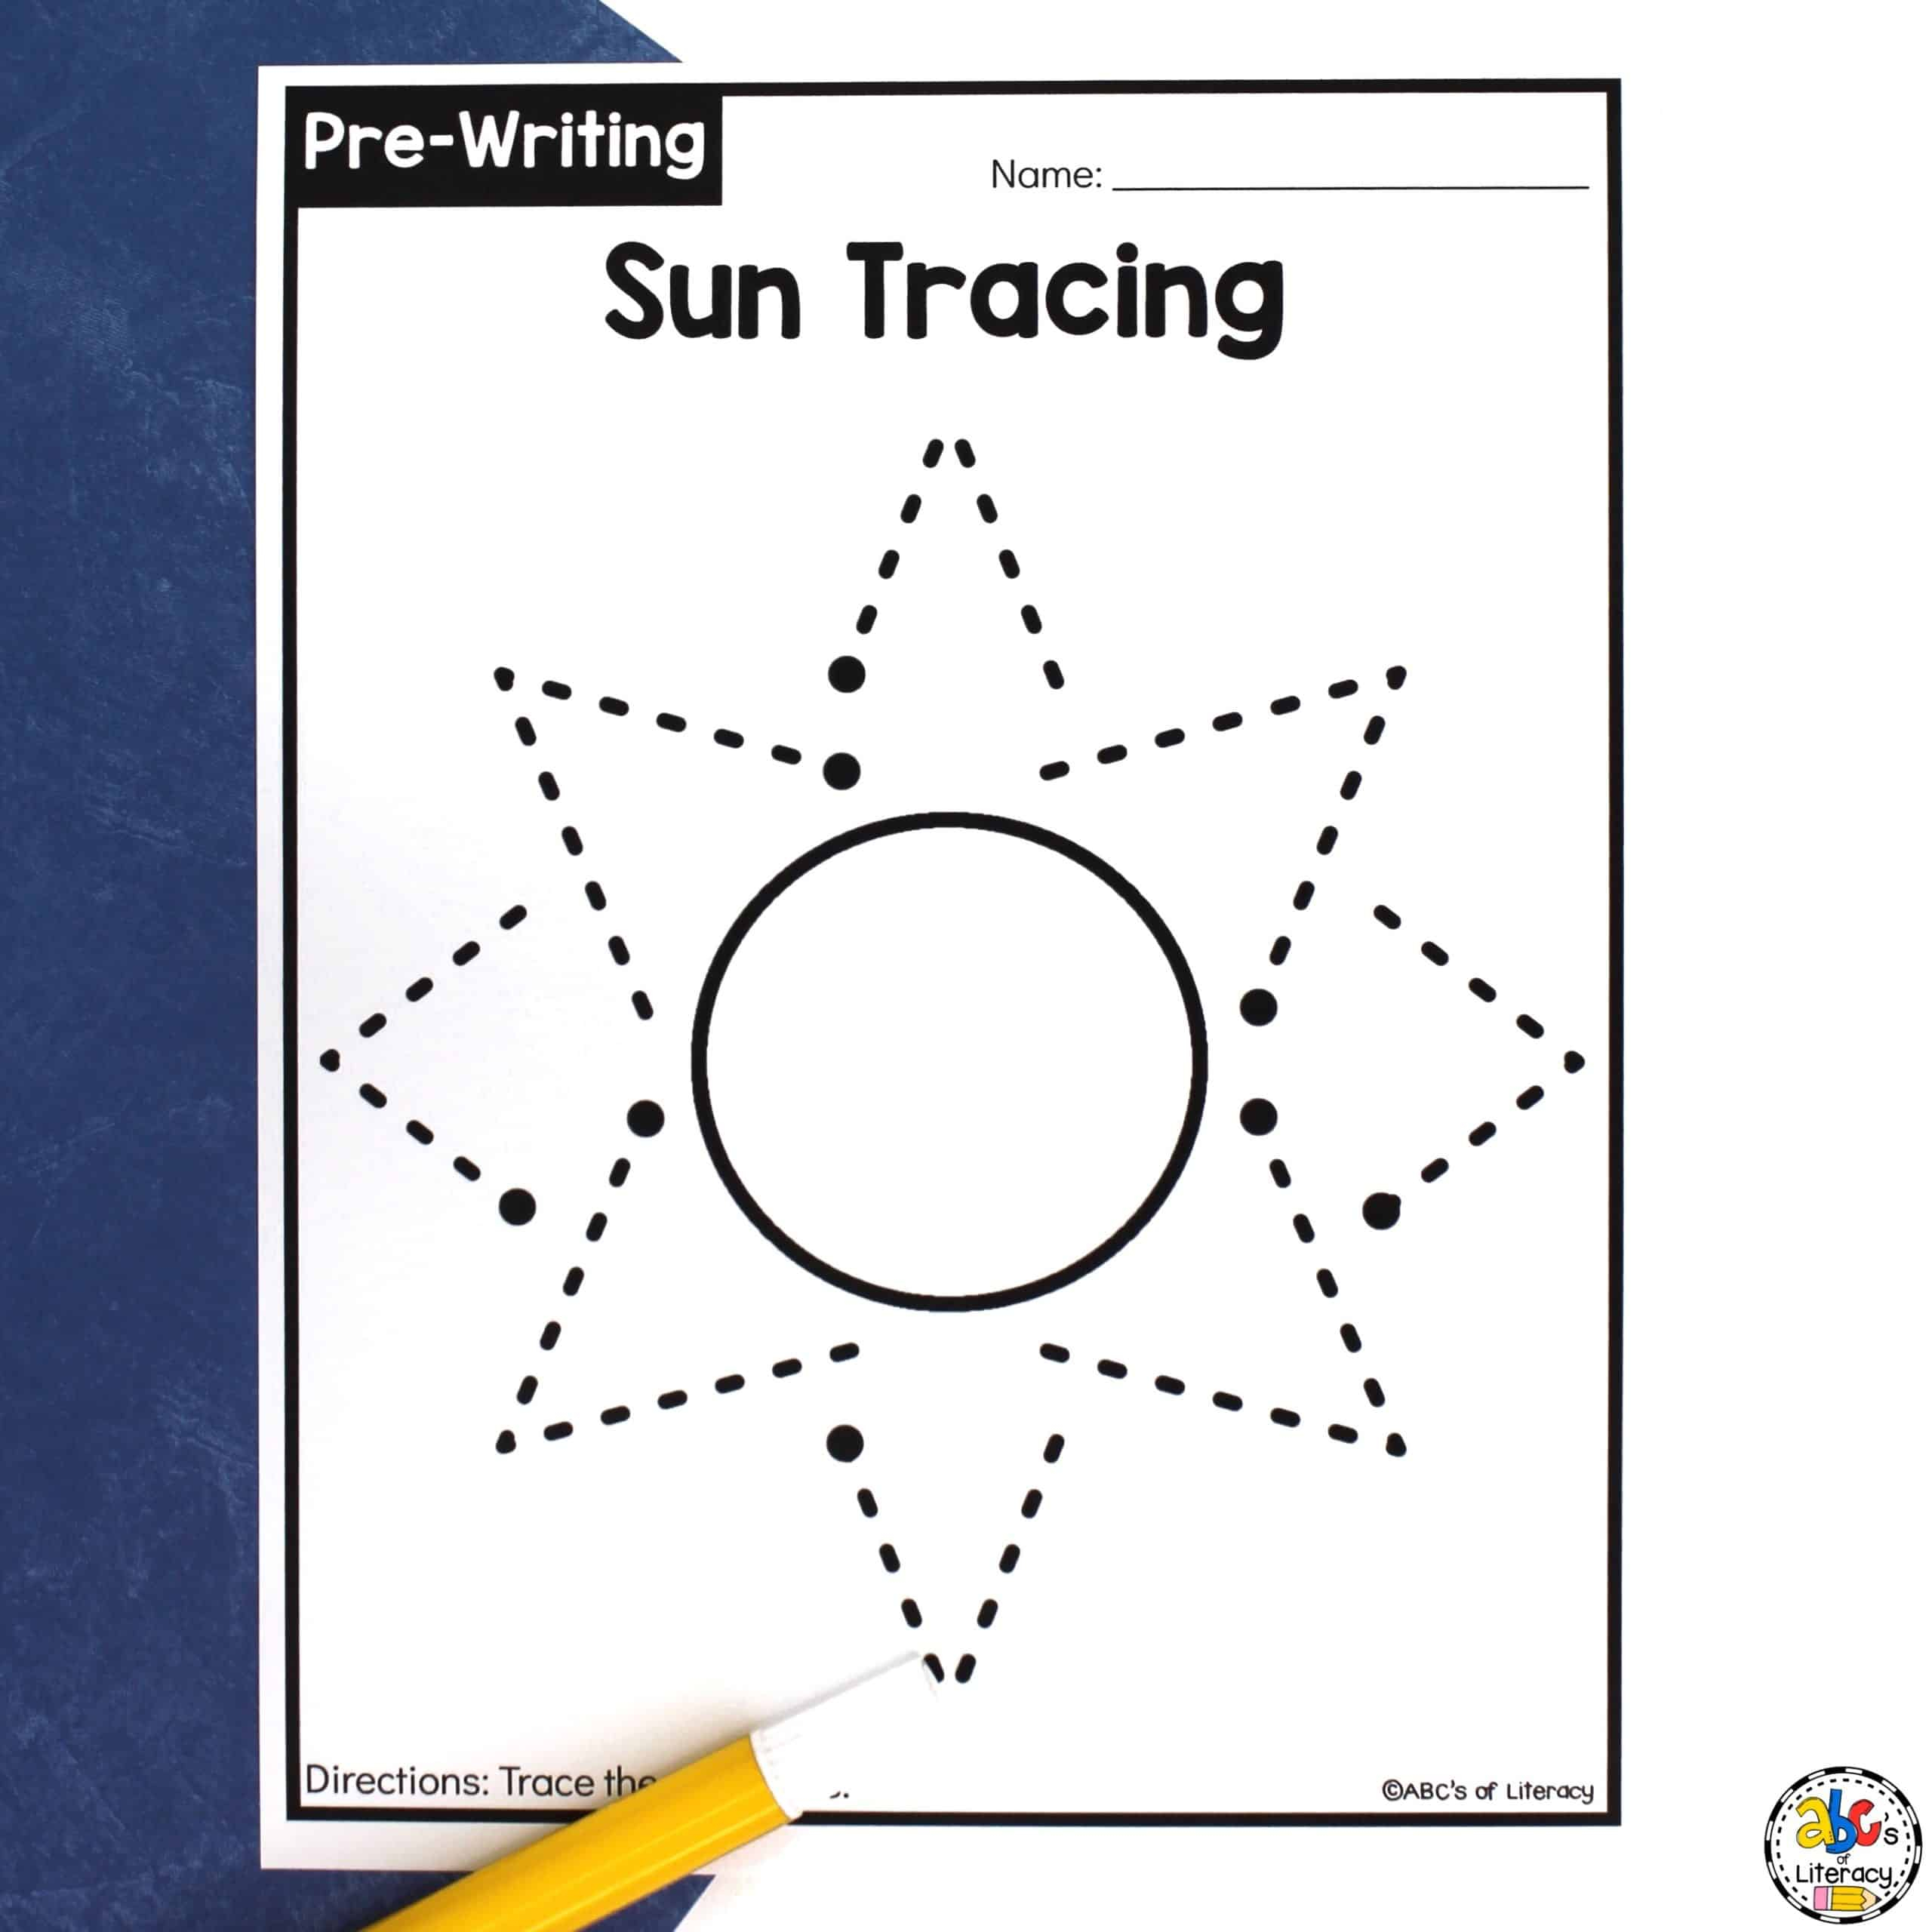 Sun Tracing Worksheets: Pre-Writing Activity For Preschoolers